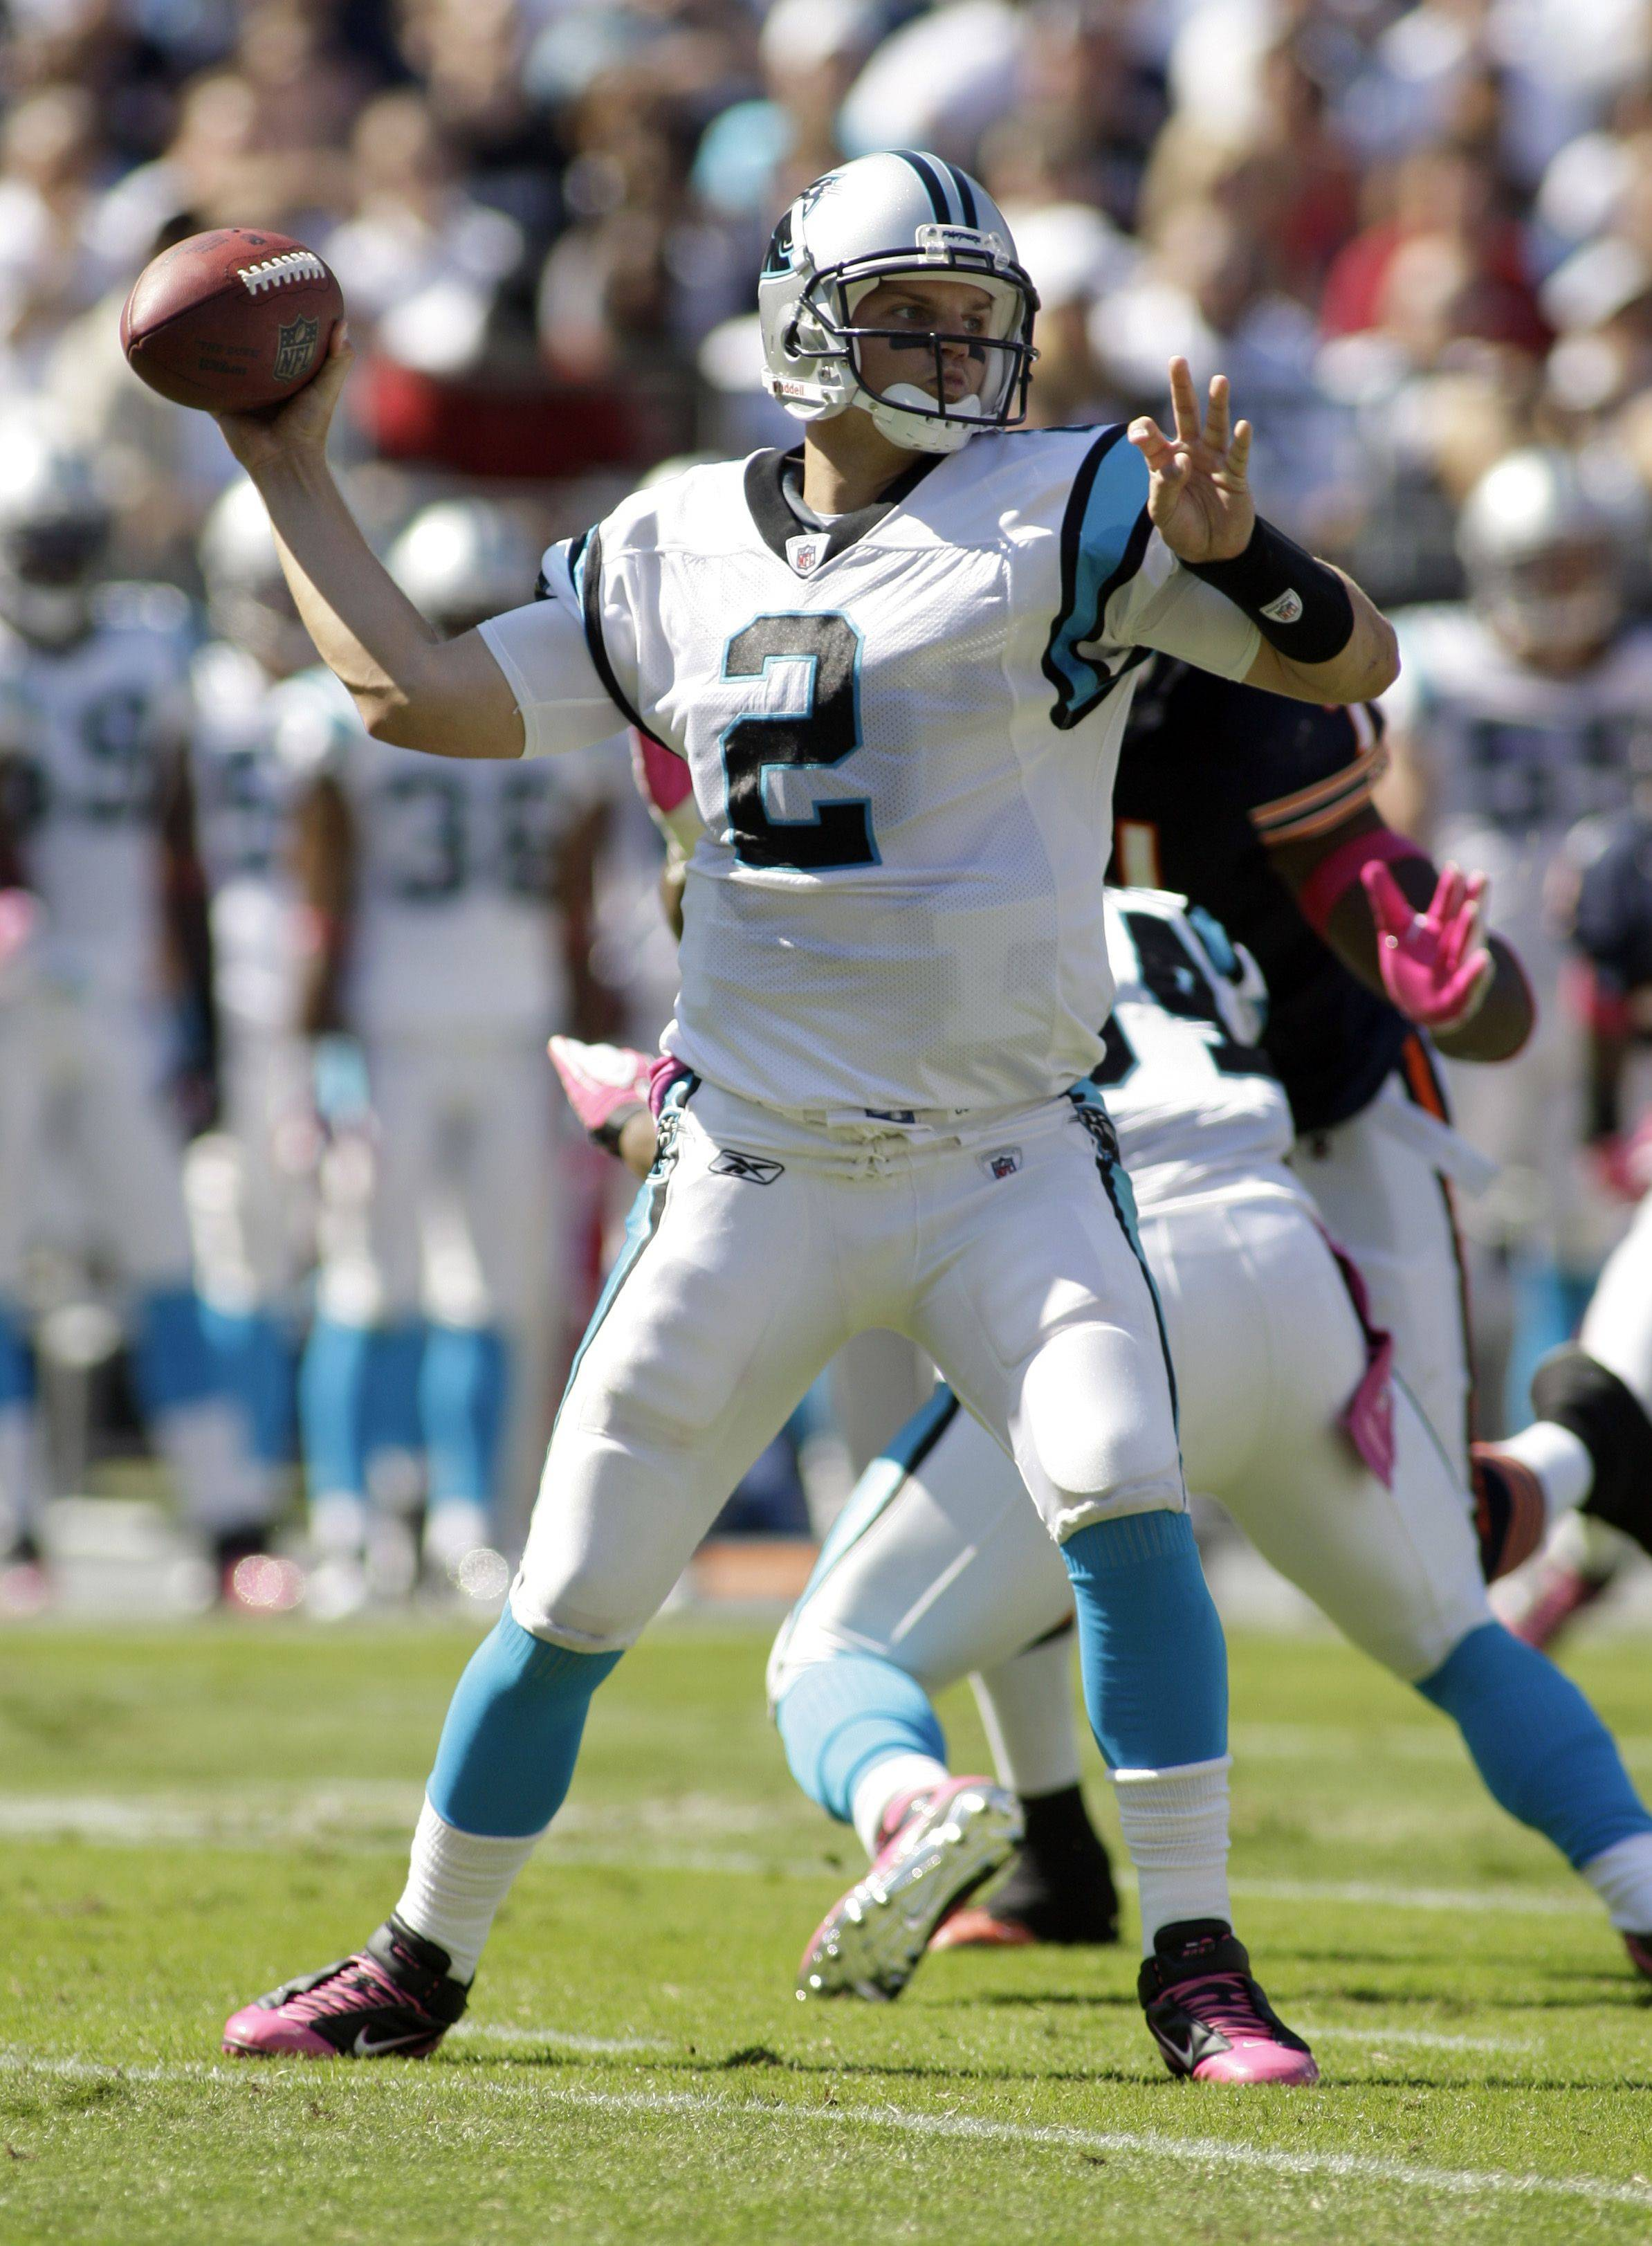 Carolina Panthers quarterback Jimmy Clausen prepares to throw a pass.